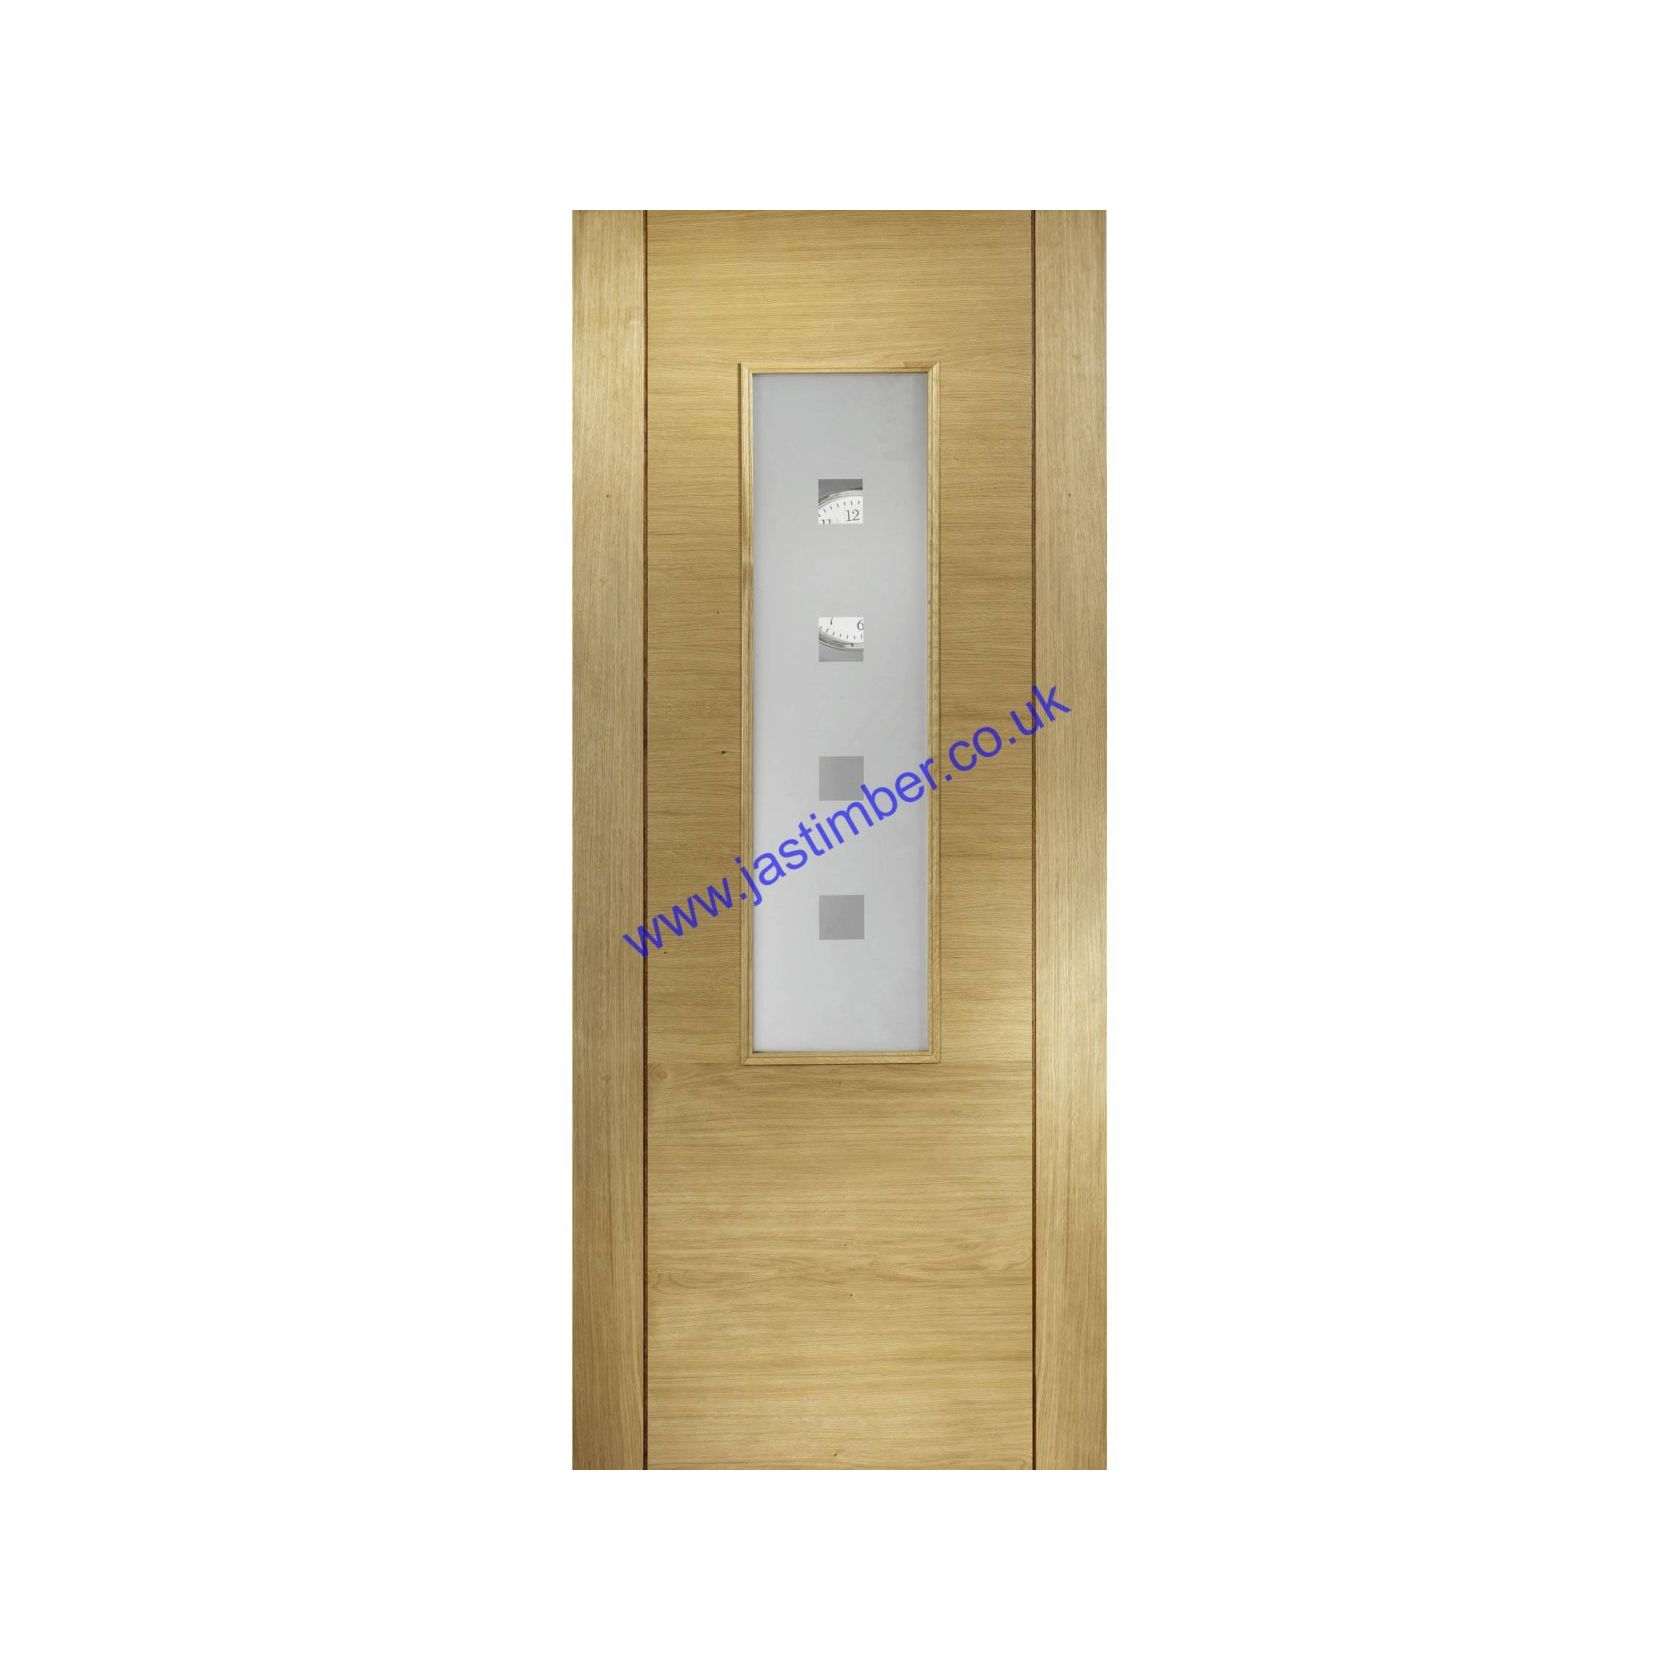 LPD Supermodels - Oak Coruna FD30 4-Light Glazed Fire Doors;nCoruna Glazed Fire Doors are Independently FD30 Fire Resistant Certified by Chiltern International Fire Ltd.